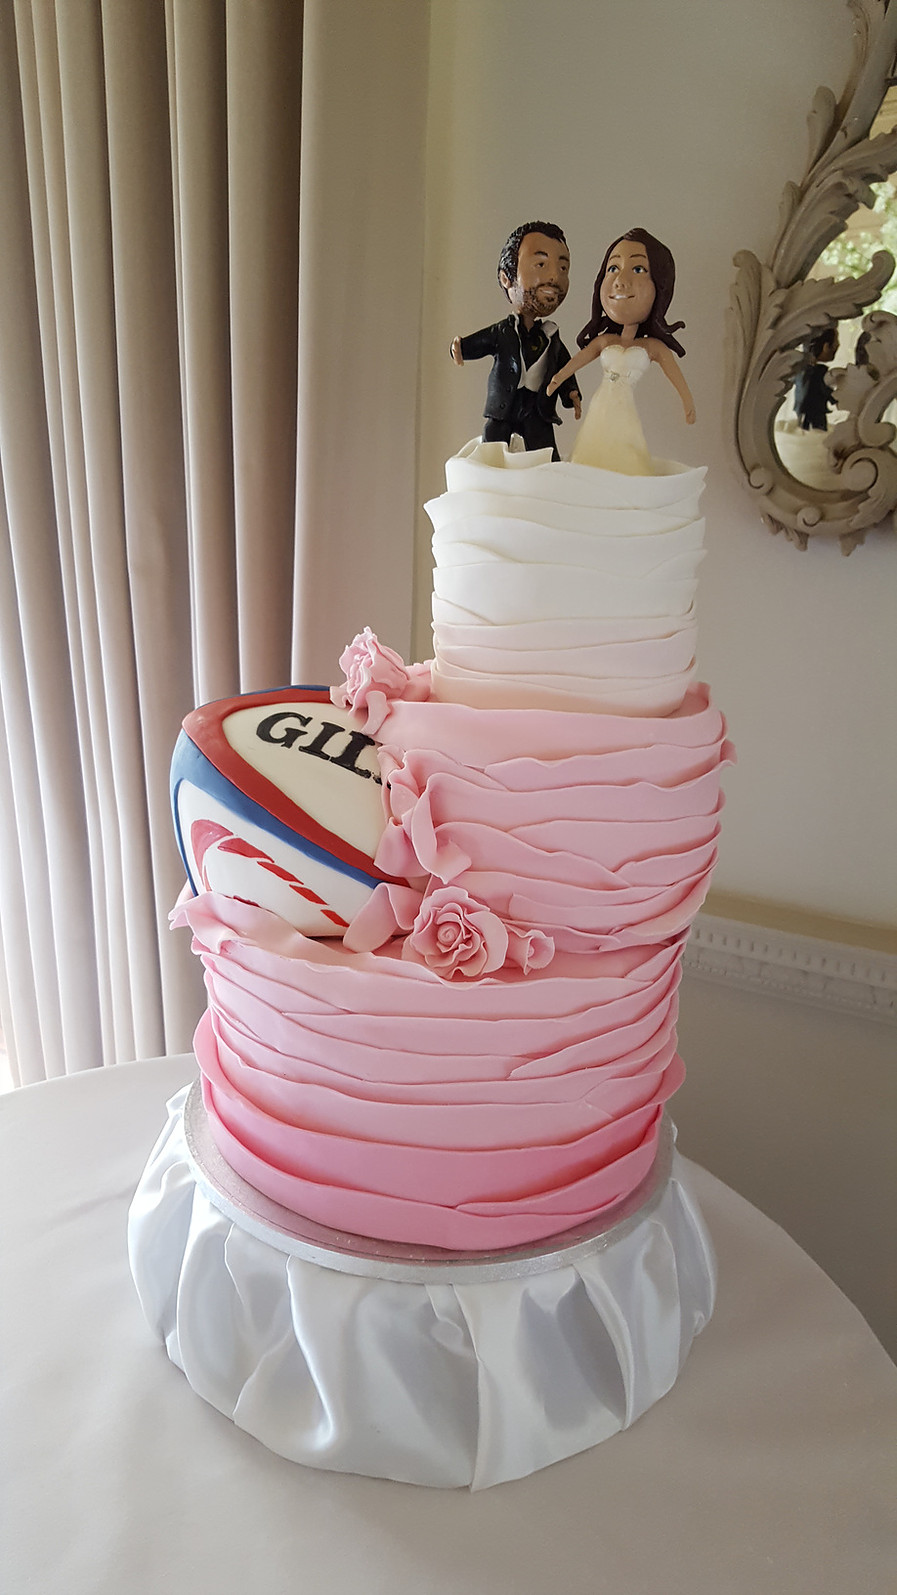 Gallery - Sugar Eccentric photos of some of our stunning cakes